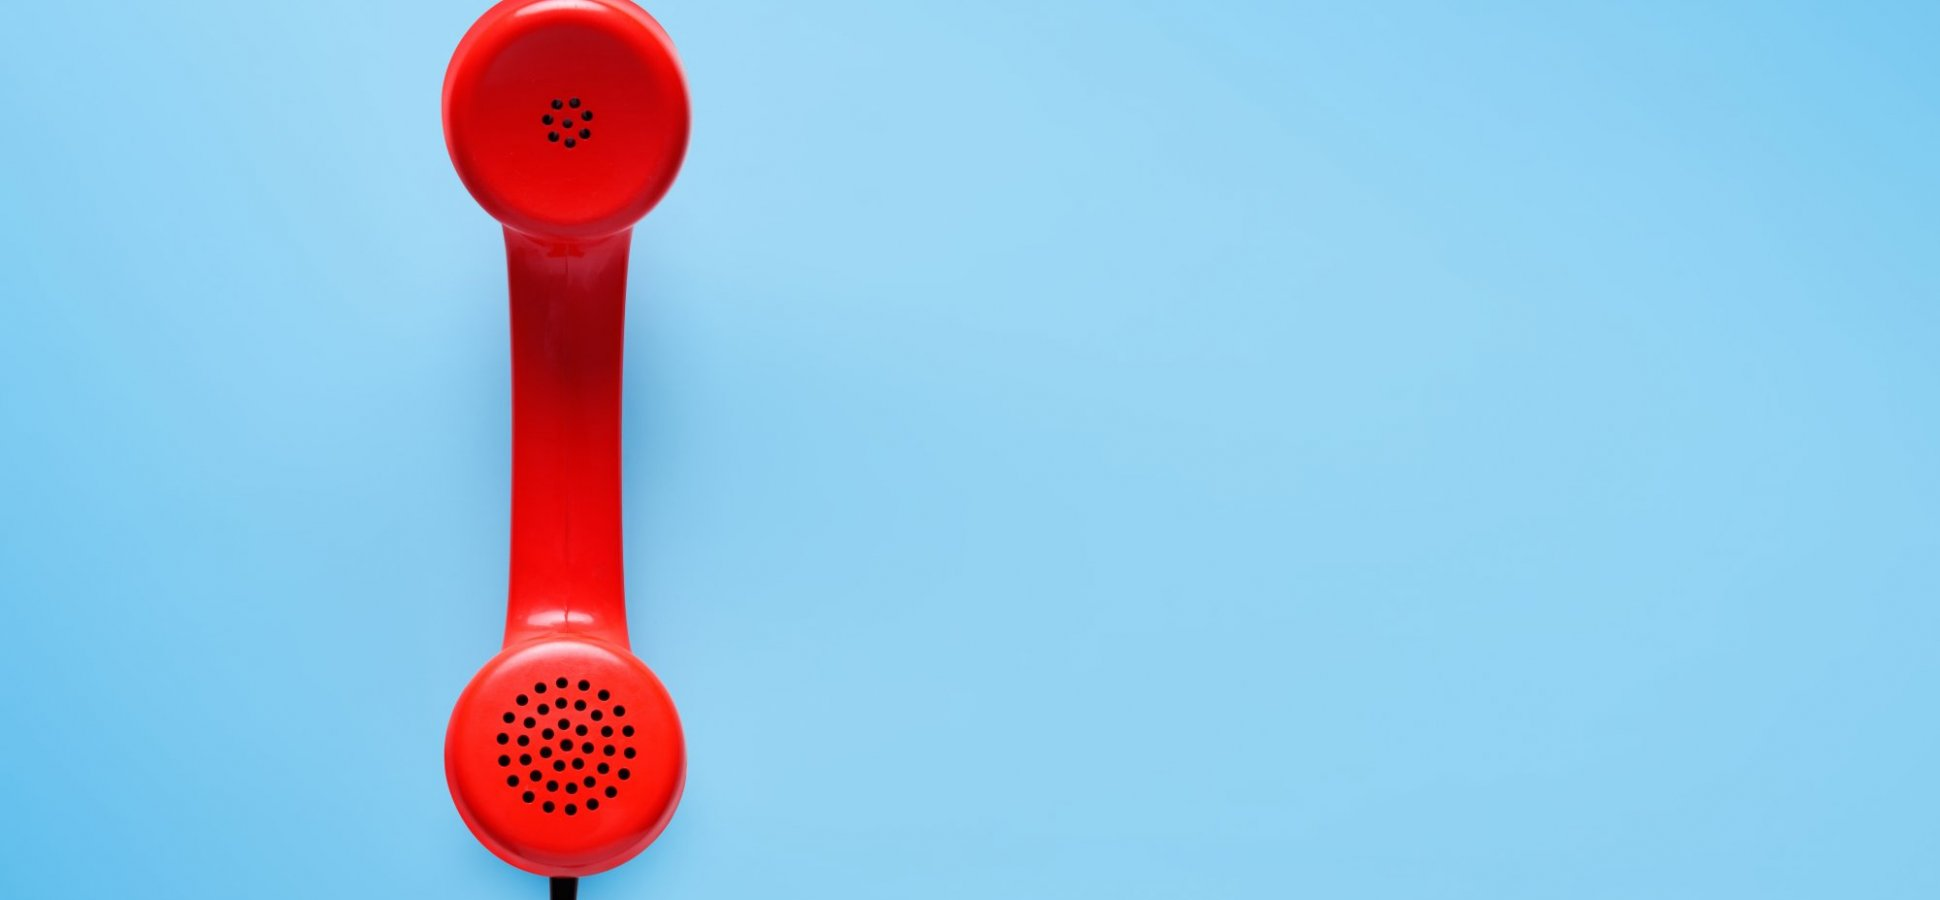 In an Impressive Move, All 50 States Just Teamed Up With Verizon, AT&T, T-Mobile, and Others to Fight Against Robocalls. (But There's 1 Little Problem)